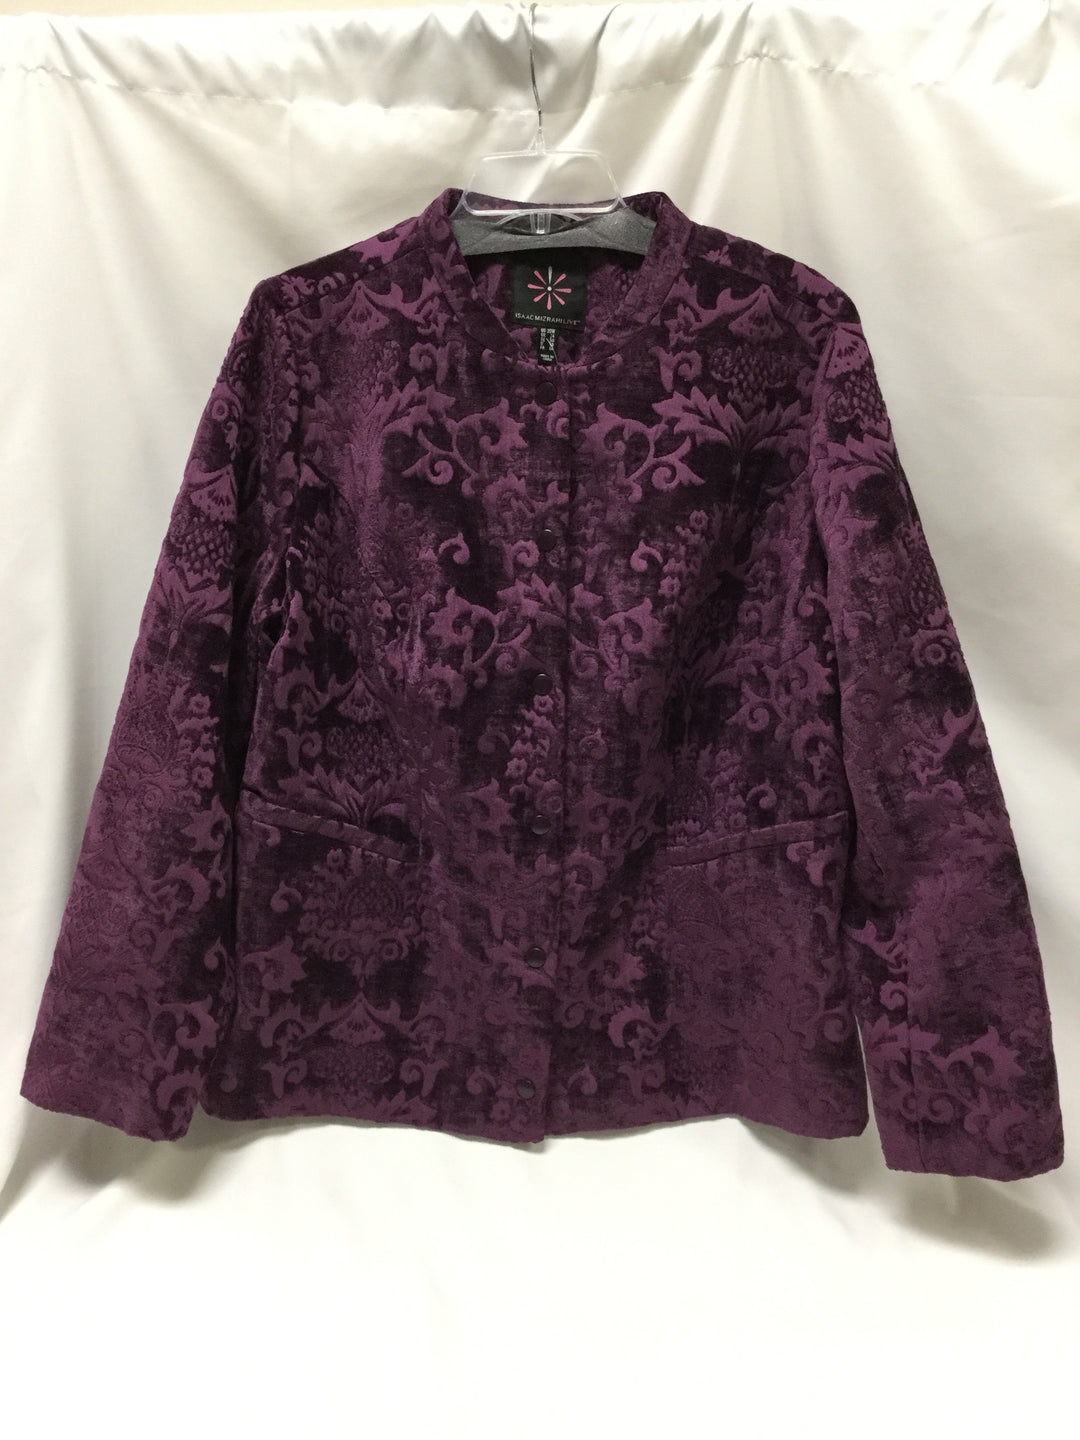 Primary Photo - BRAND: ISAAC MIZRAHI LIVE QVC <BR>STYLE: BLAZER JACKET <BR>COLOR: PURPLE <BR>SIZE: 1X <BR>SKU: 155-15599-222249